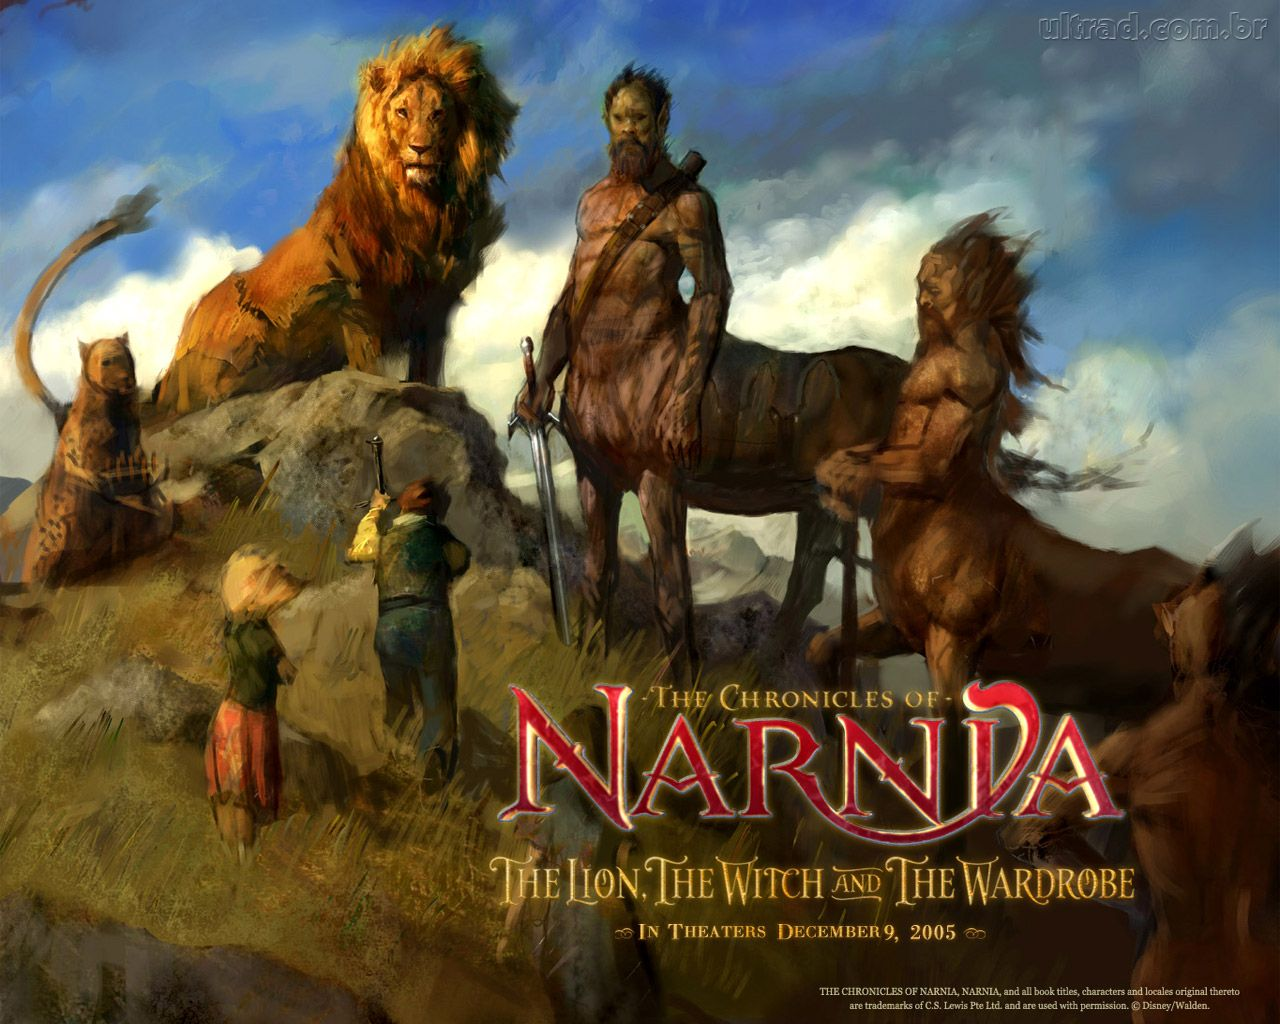 http://4.bp.blogspot.com/-ksmHfm0V9CE/TZiY6k-XSsI/AAAAAAAAAsE/ny7zT67UjEY/s1600/63717_Papel-de-Parede-As-Cronicas-de-Narnia-The-Chronicles-of-Narnia-The-Lion-the-Witch-and-the-Wardrobe--63717_1280x1024.jpg